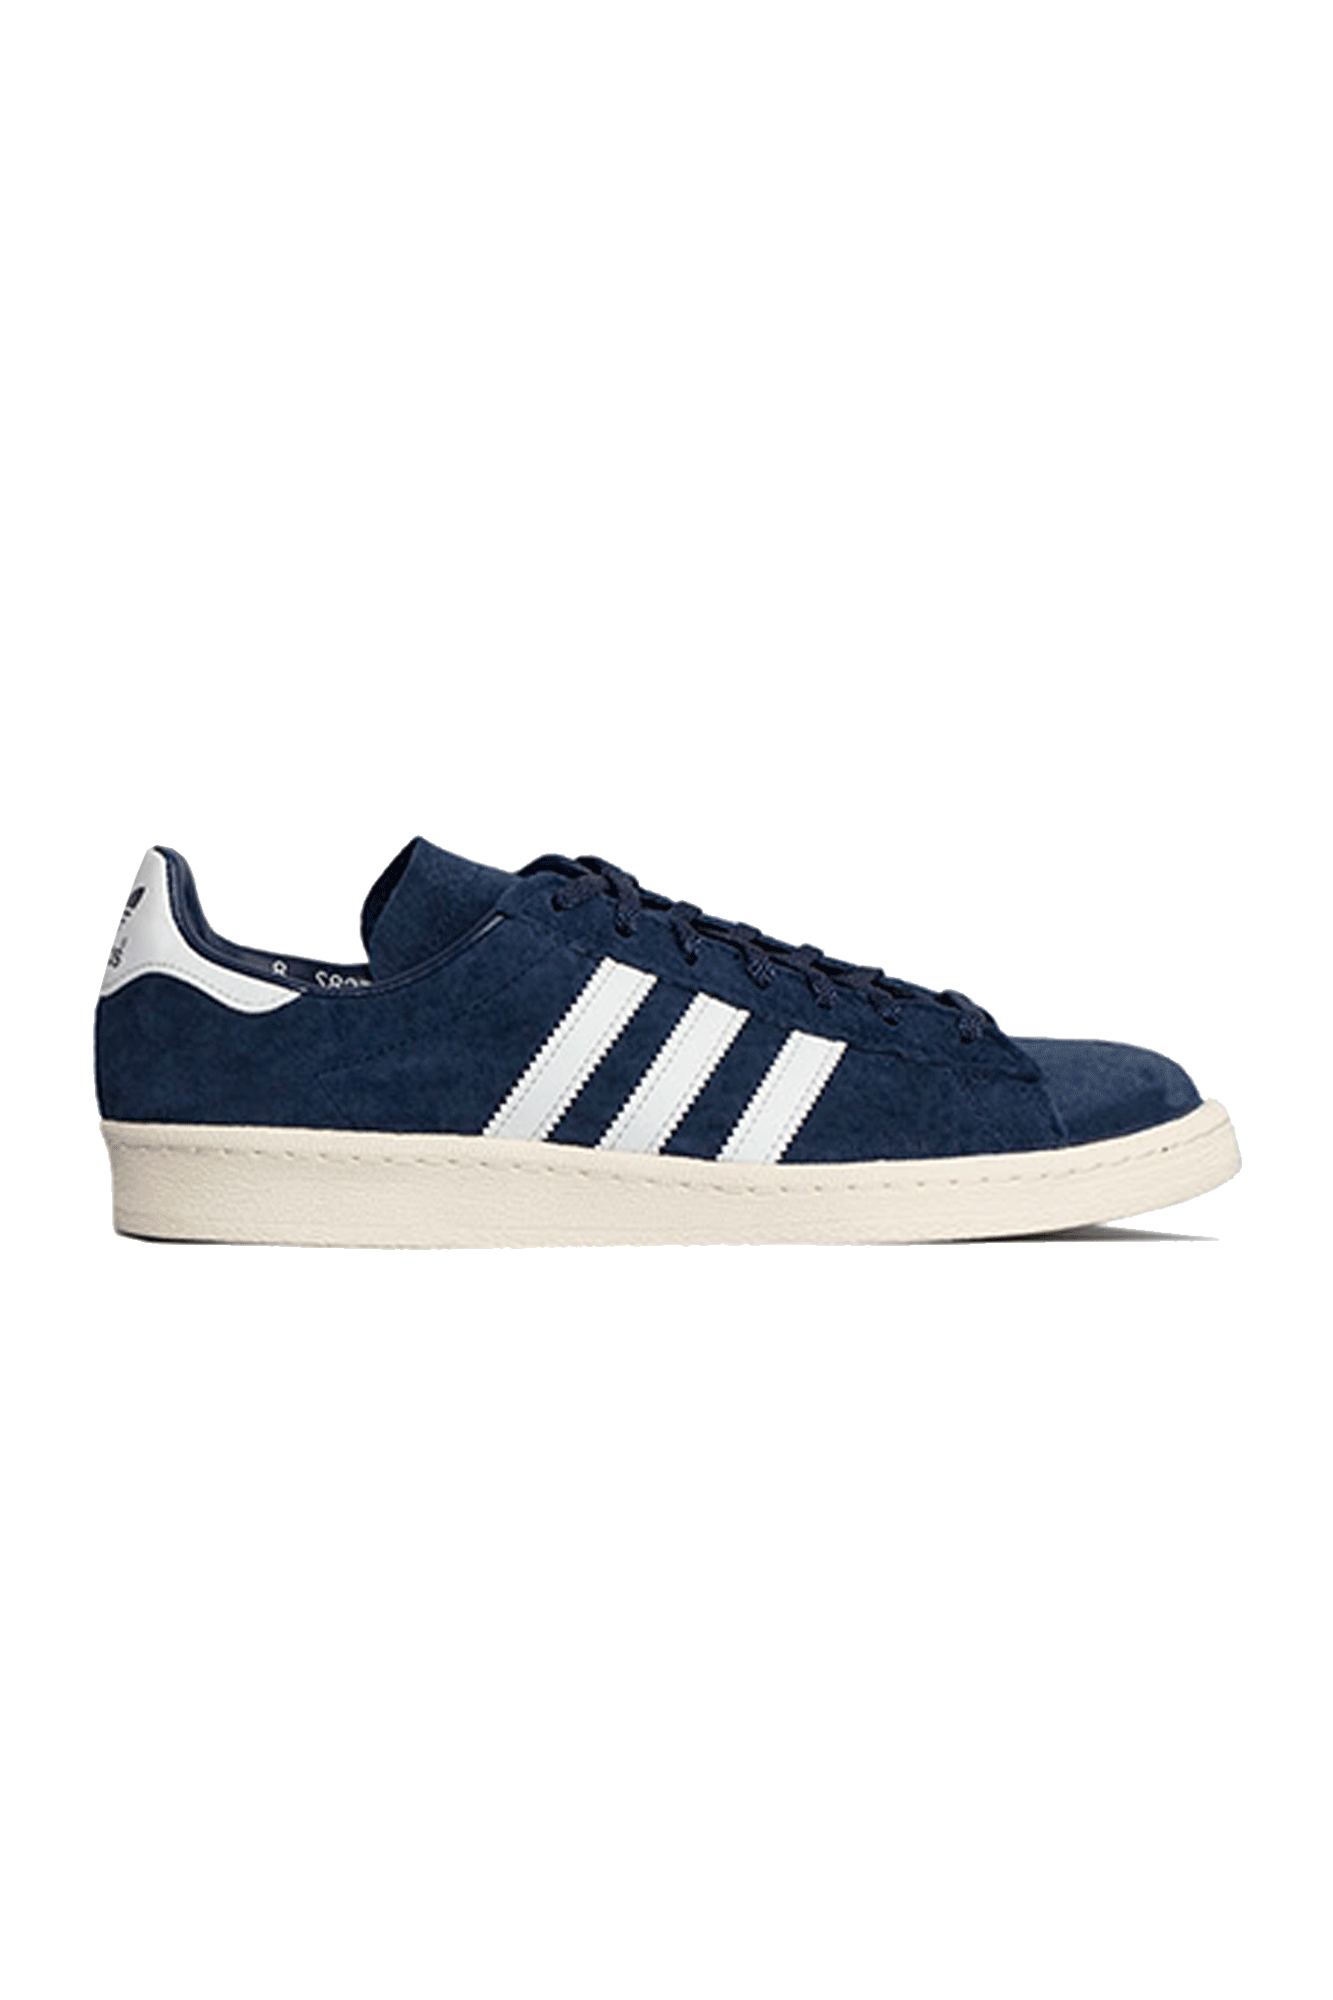 Adidas Originals Sneakers Campus 80s Japan Pack Vntg Blue S82740#000#C0007#5 - One Block Down